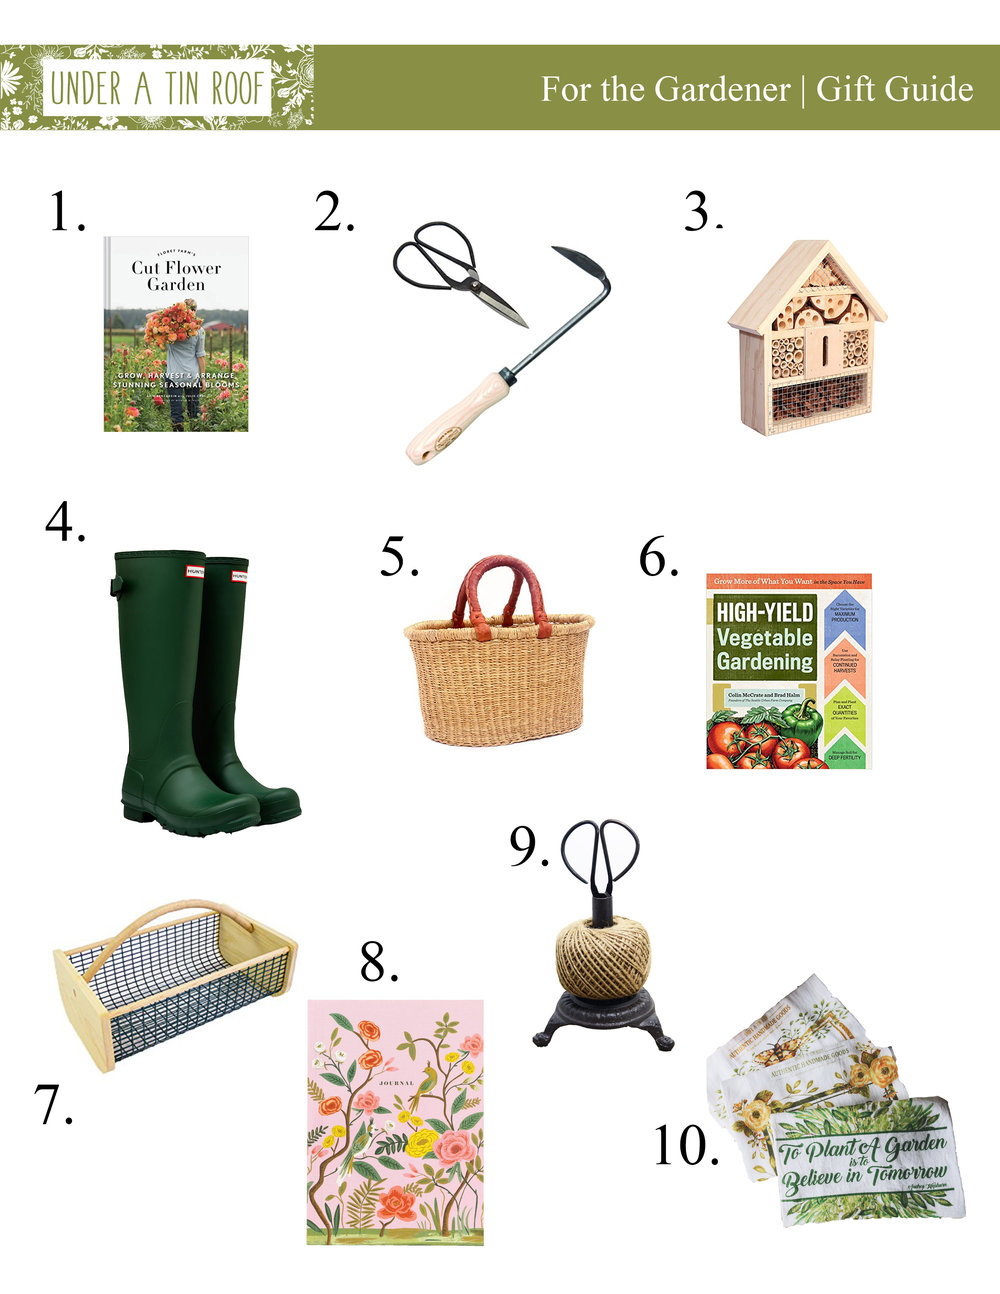 Gifts For The Gardener   Under A Tin Roof Blog